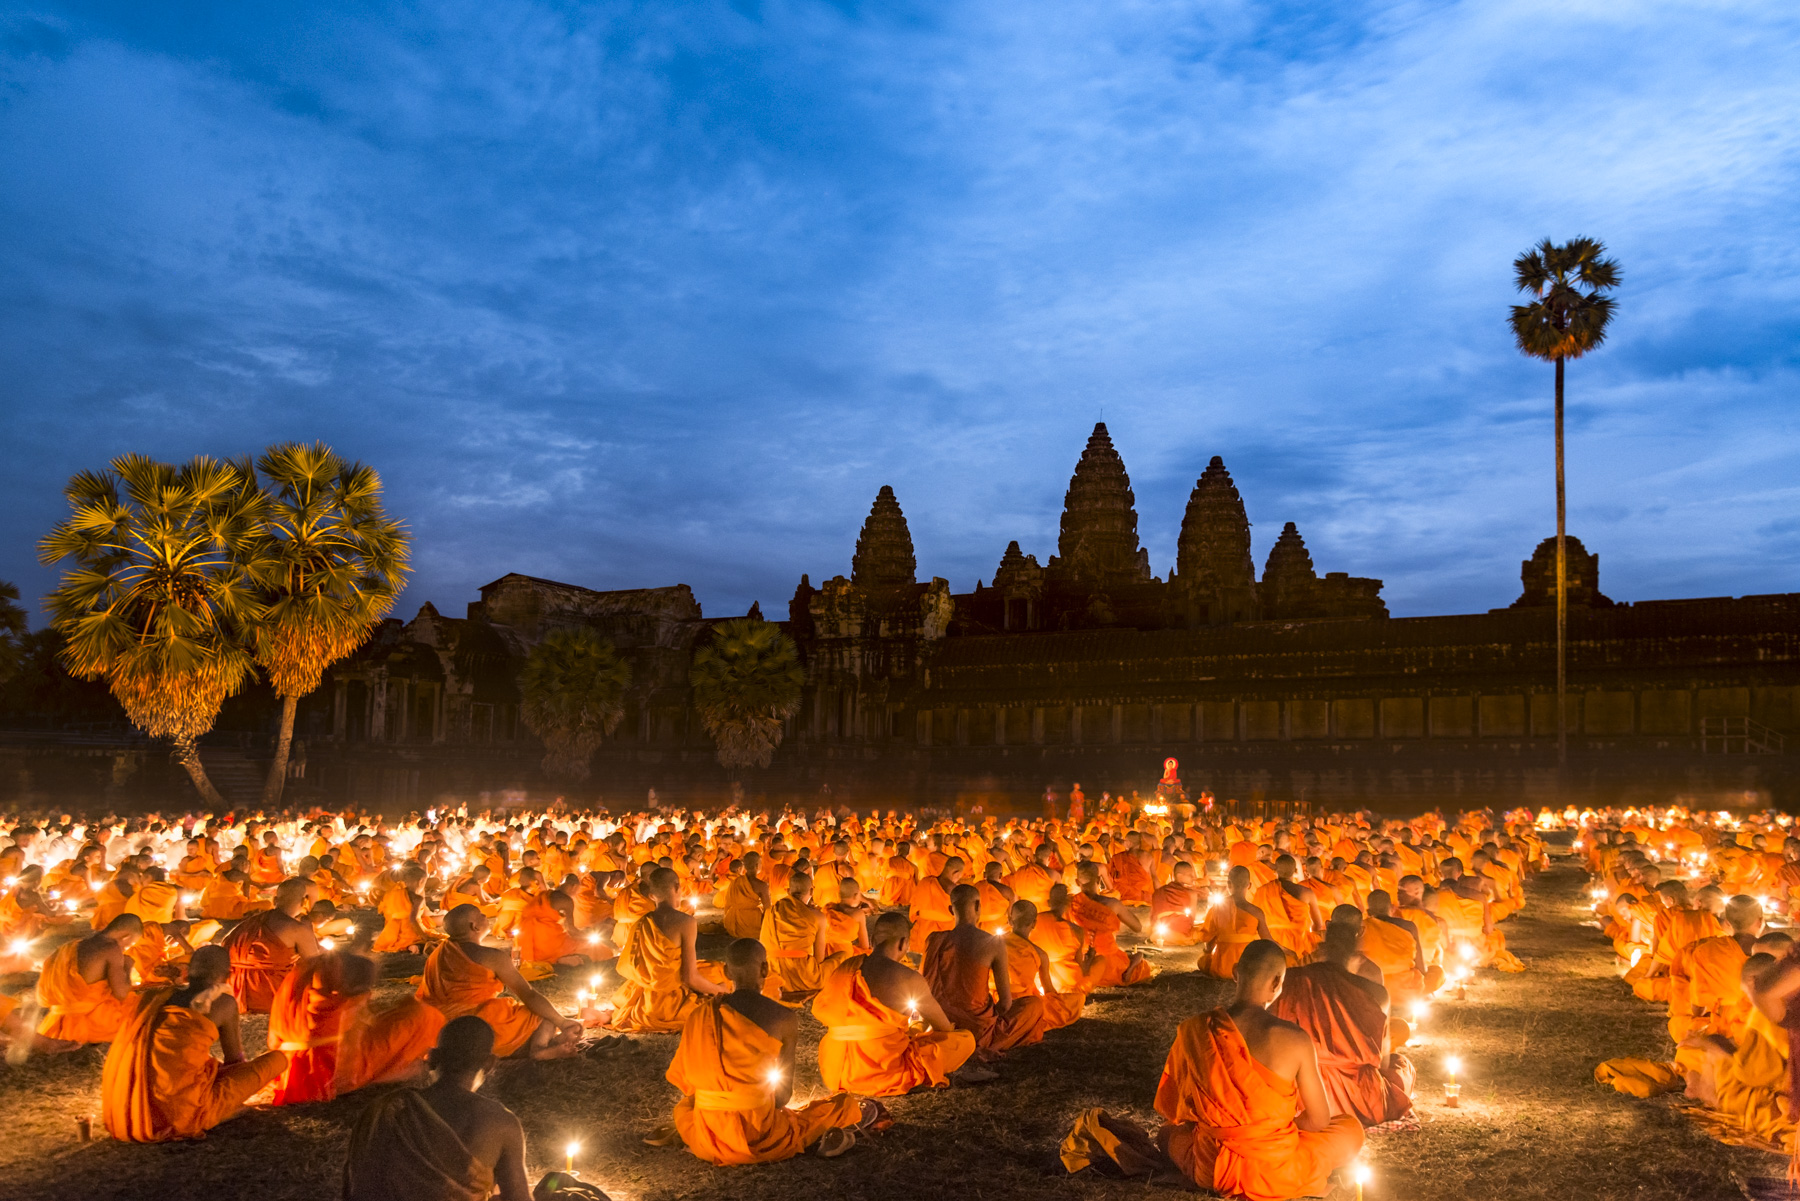 Hundreds of monks and nuns gather under the full moon in front of Angkor Wat for the annual Visak Bochea festival to honour Buddha's enlightenment.